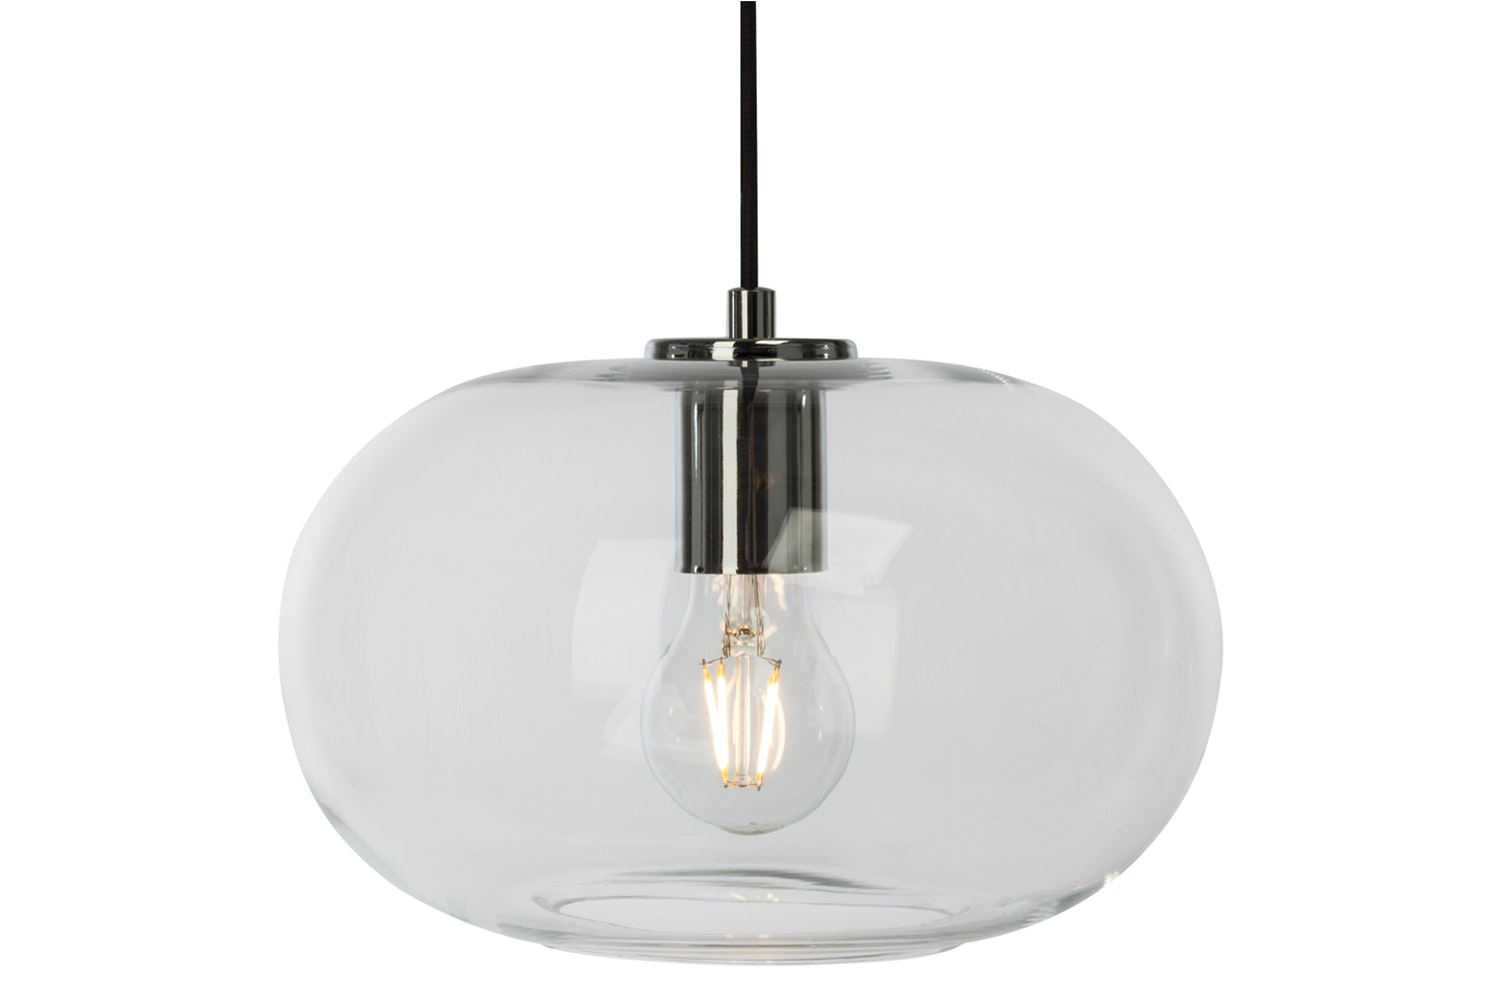 Sandness Ceiling Light Smoked Glass